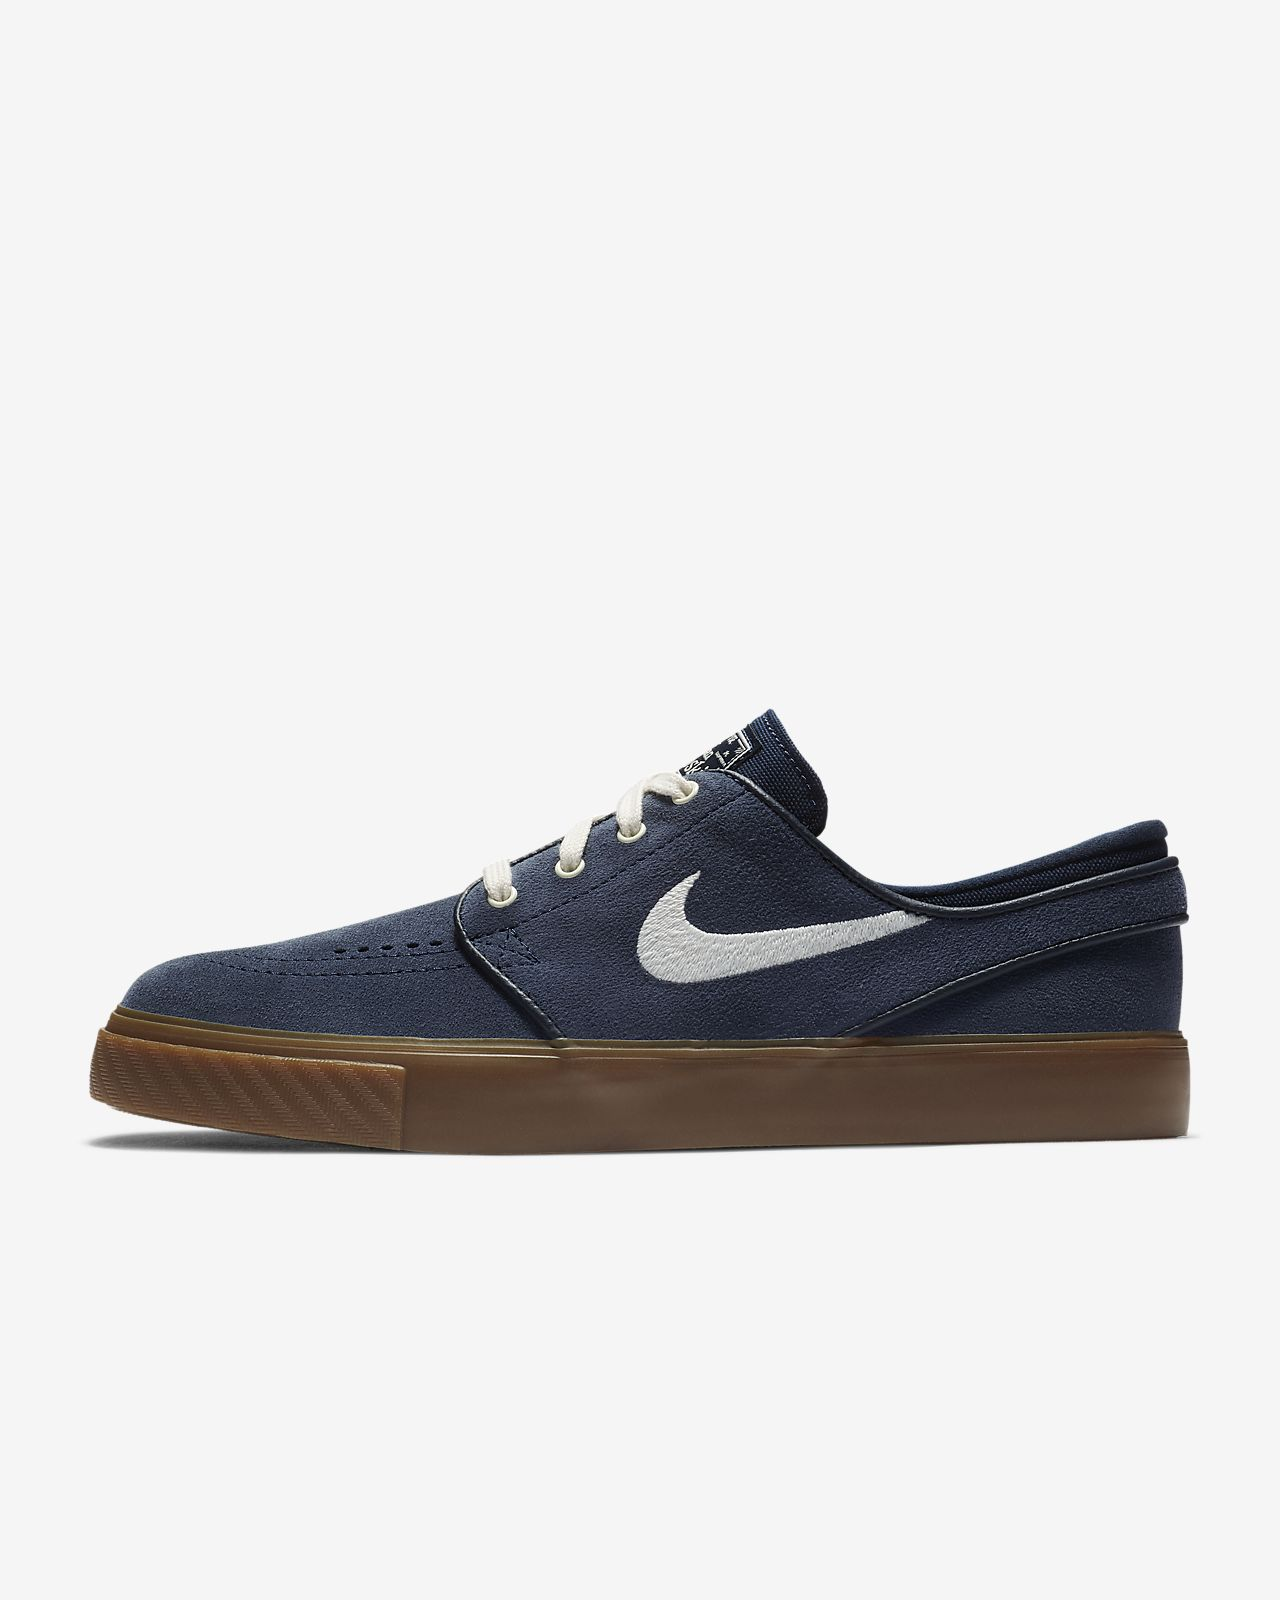 meet fbb80 821cd ... Nike Zoom Stefan Janoski Women s Skateboarding Shoe